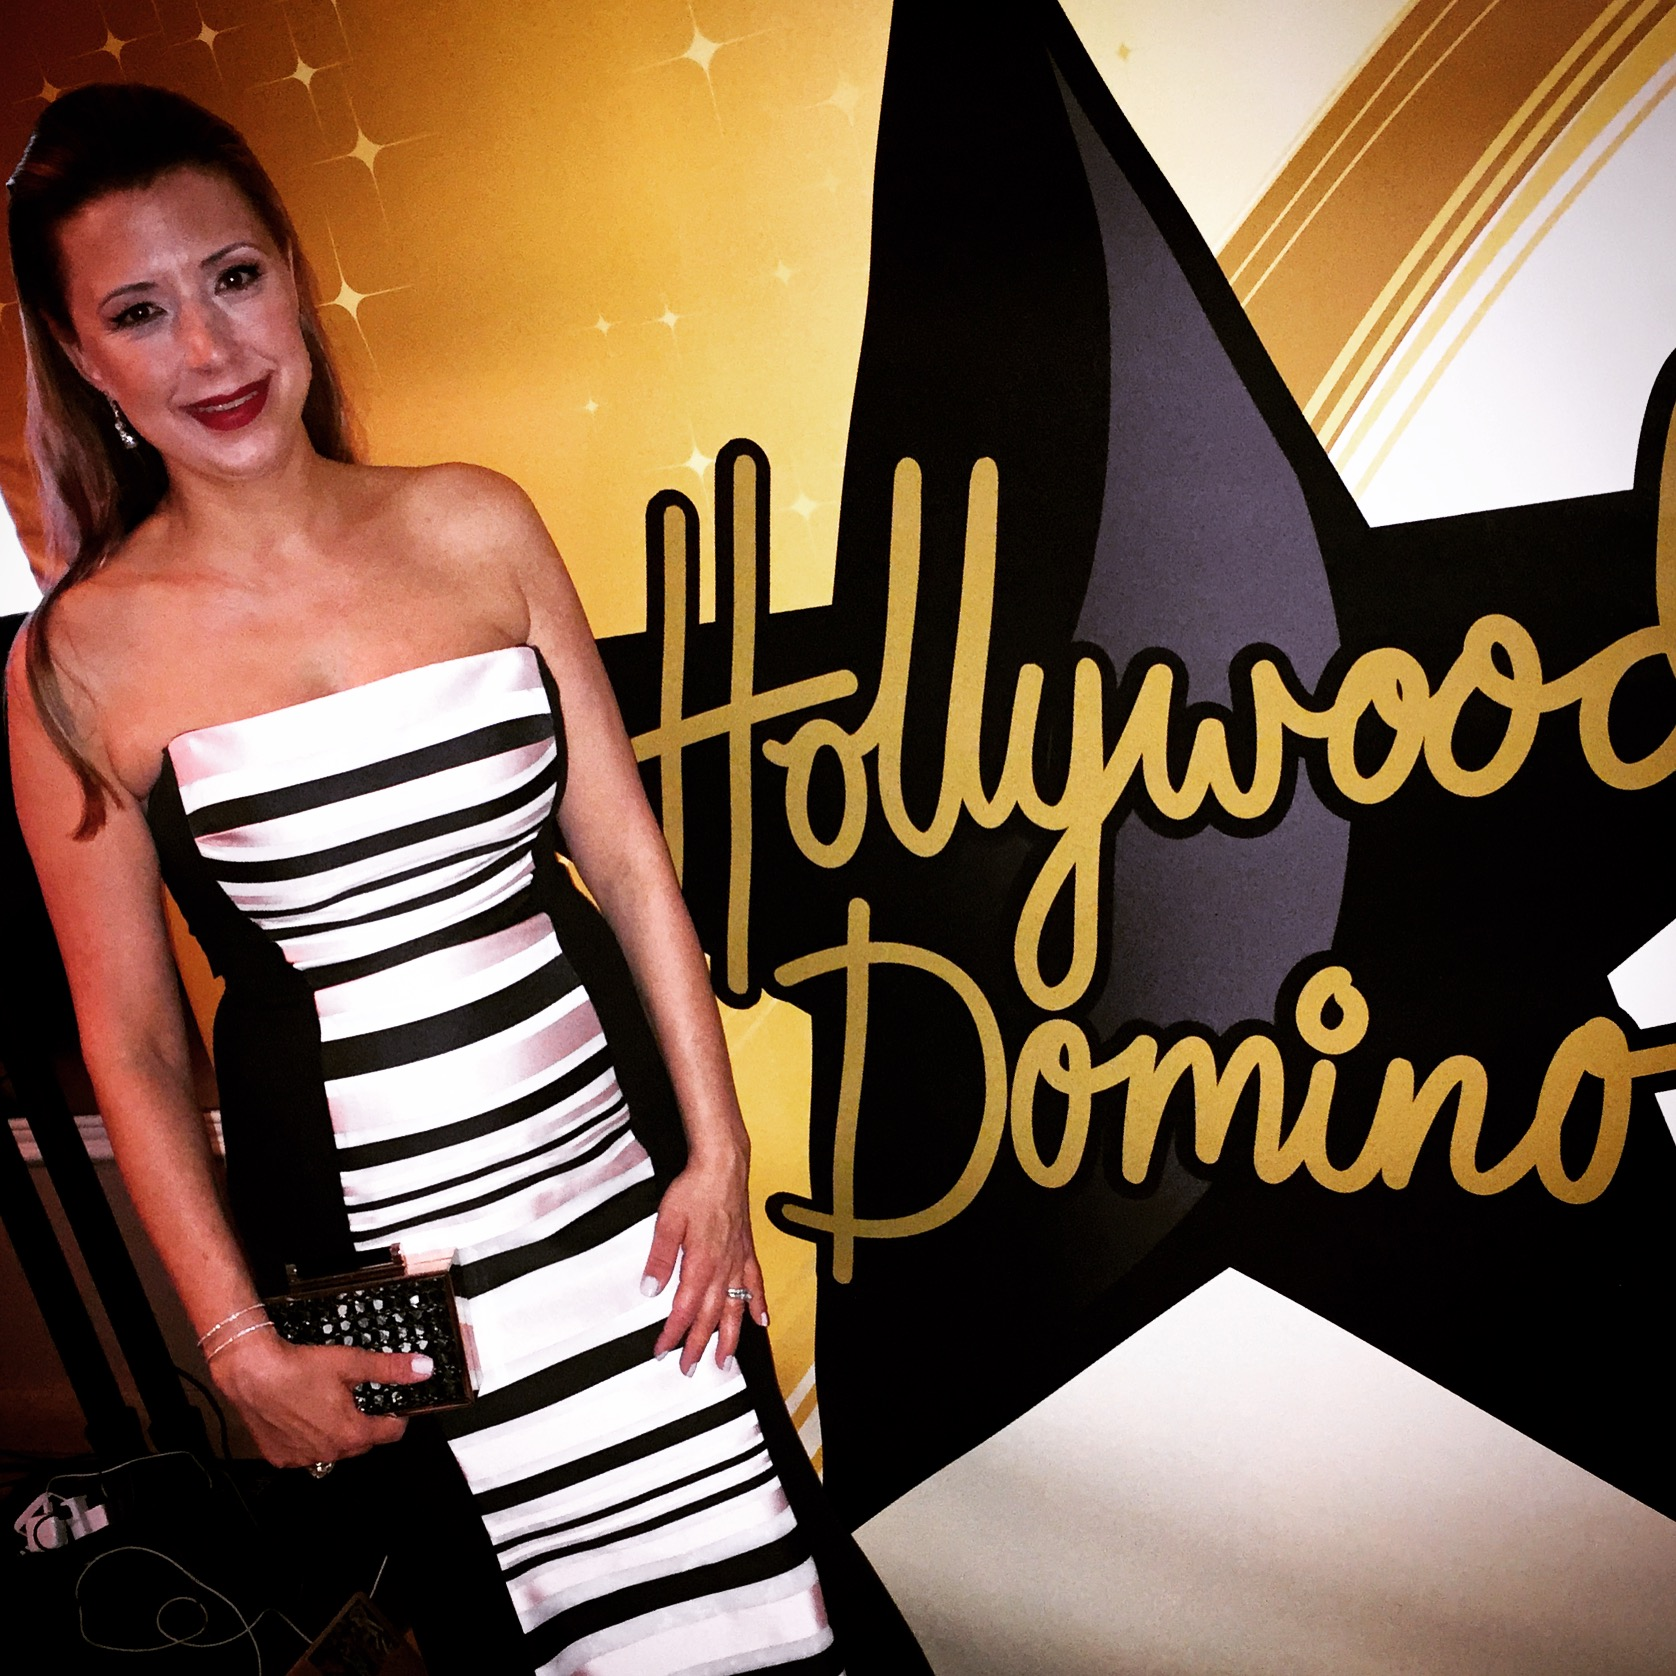 Hollywood Domino 5